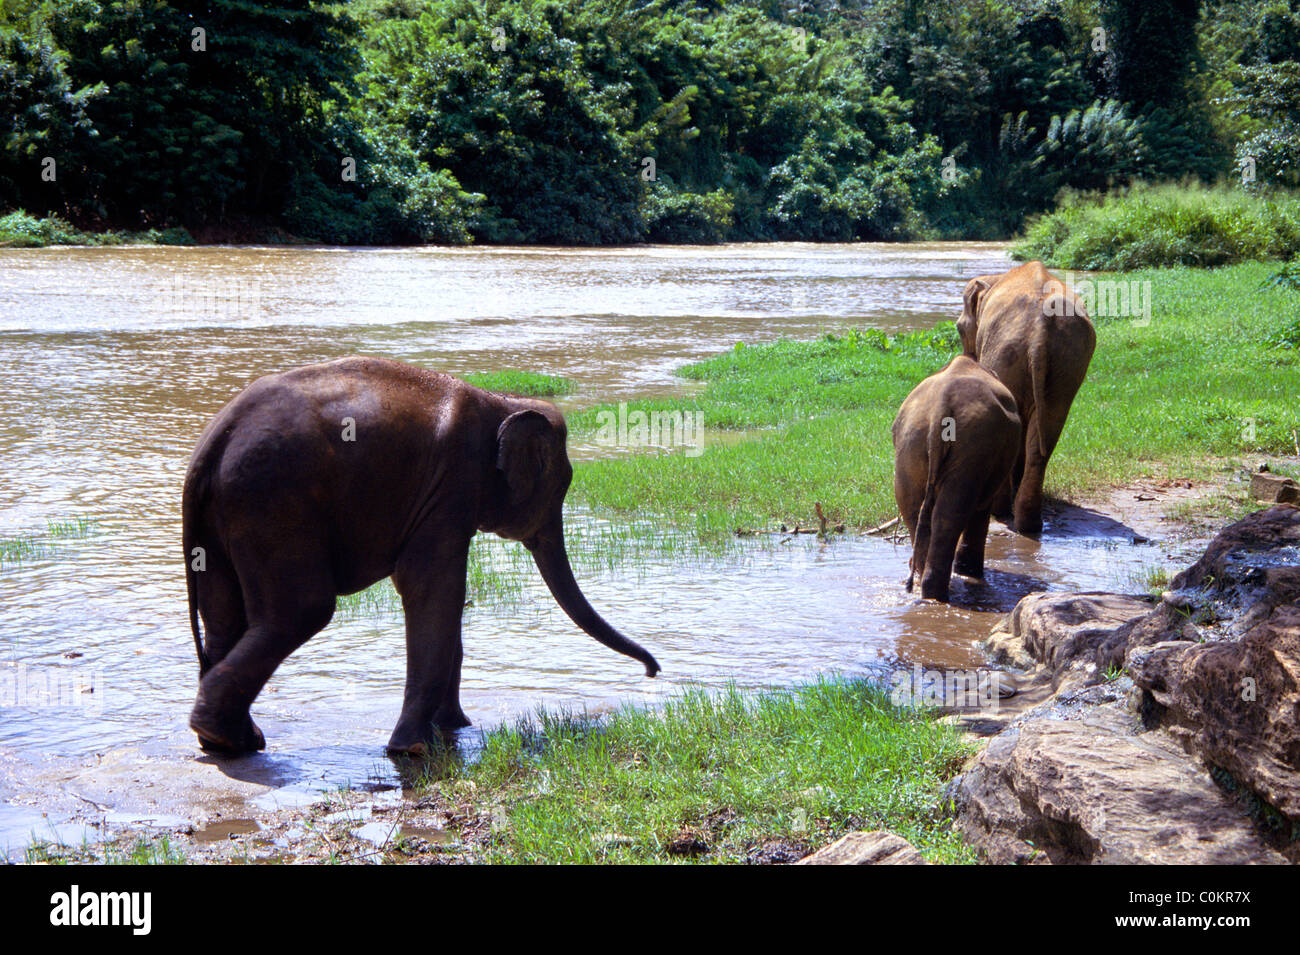 Young Elephants in the river near Pinnawala Elephant Orphanage in Kegalle, Sri Lanka. Stock Photo